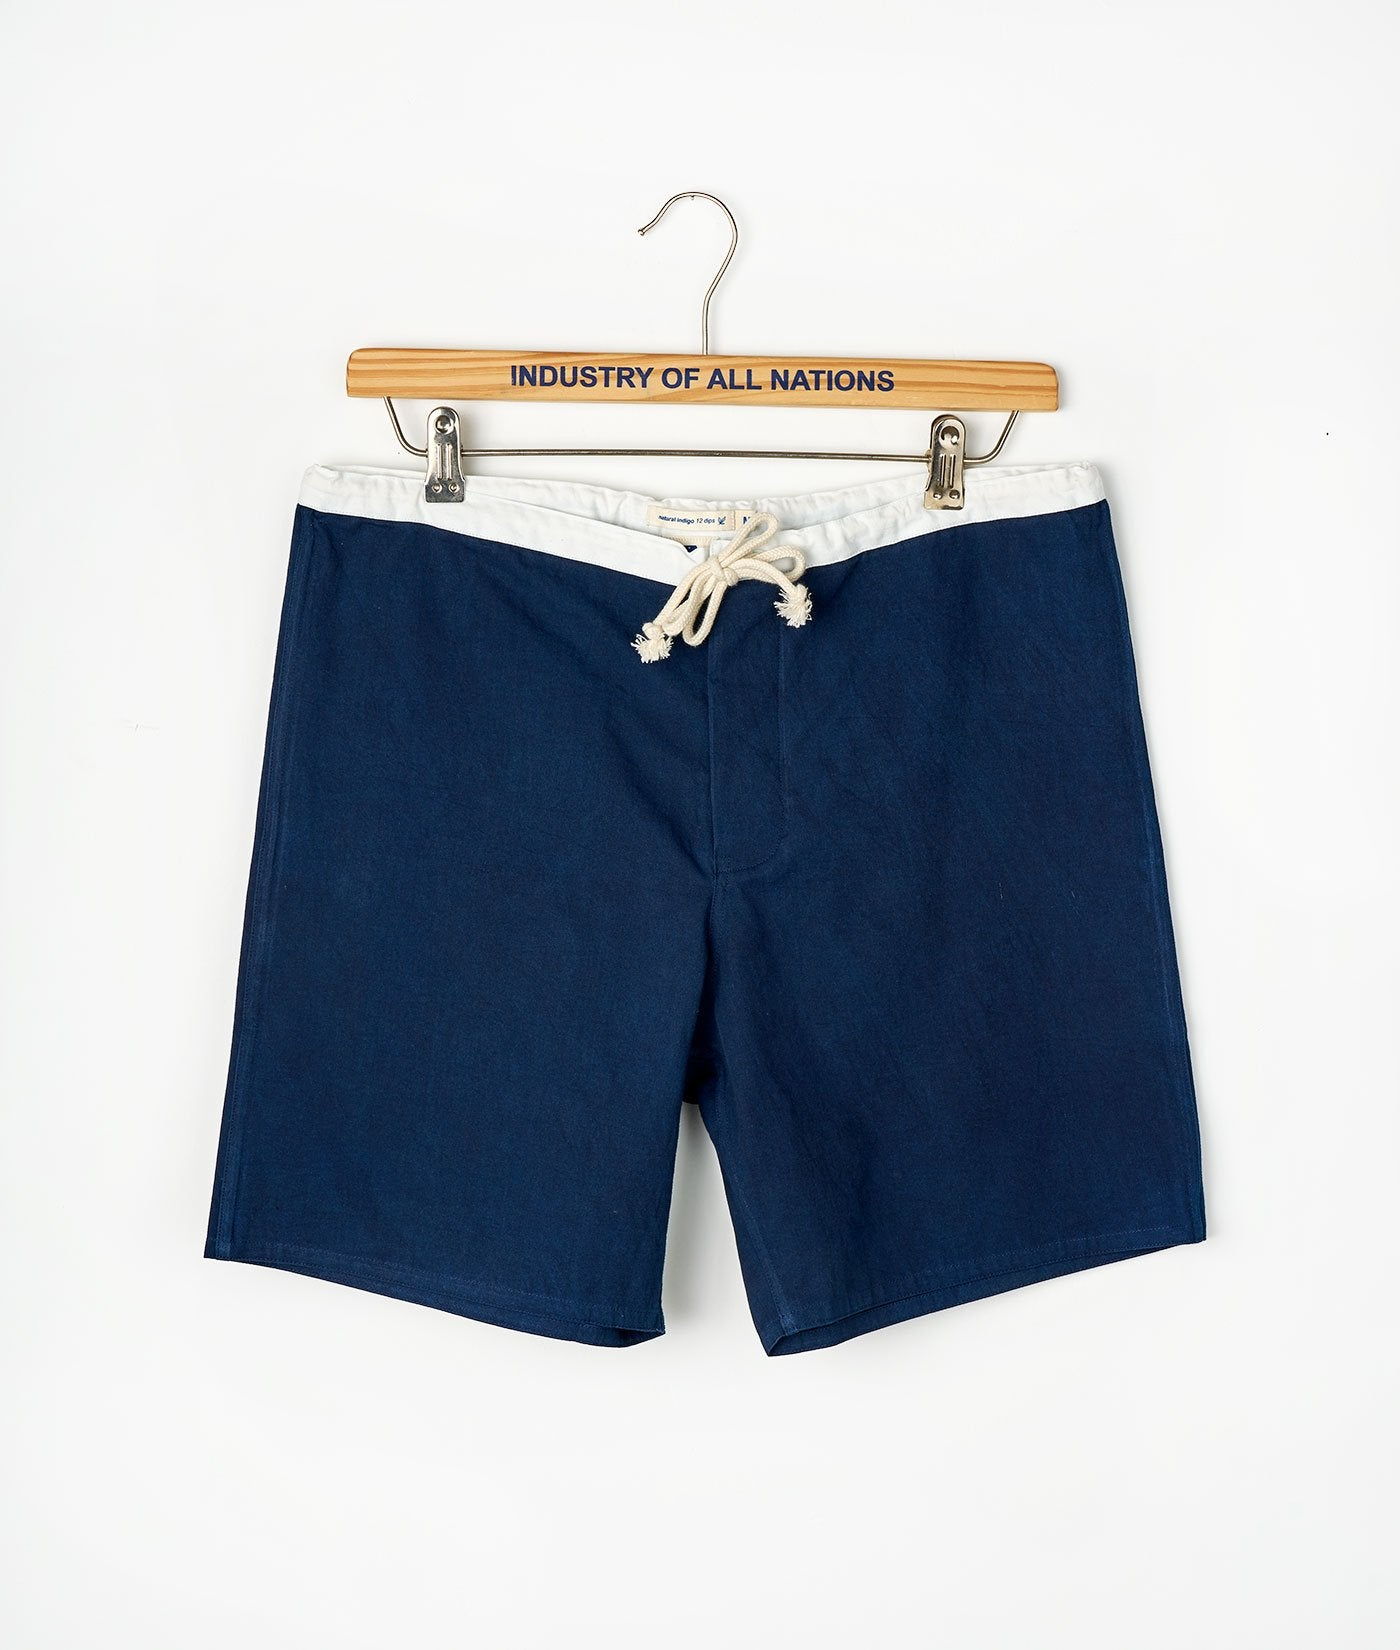 Industry of All Nations Organic Cotton Drawstring Boardshorts Indigo 12